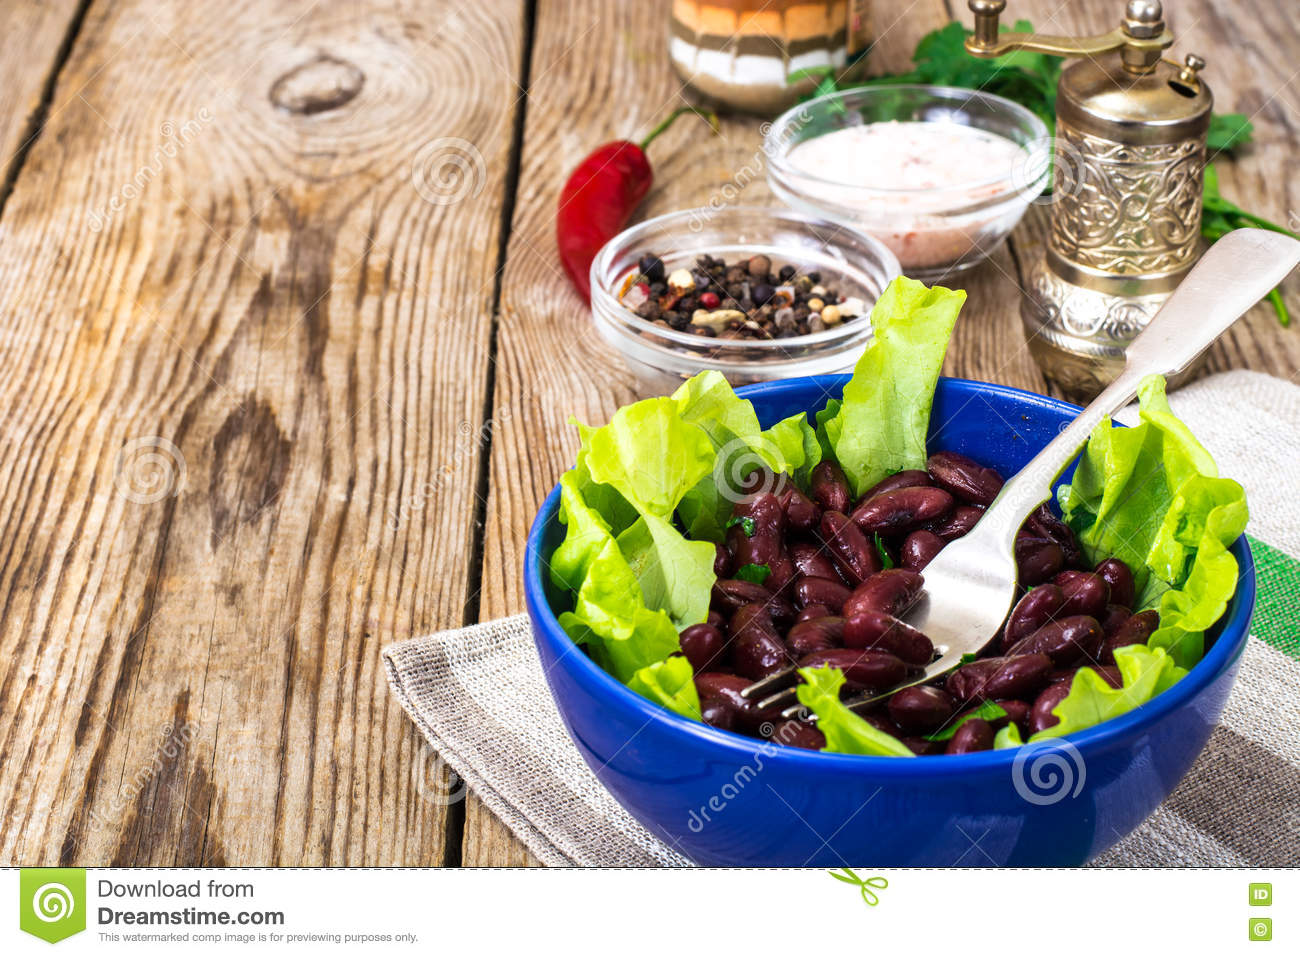 Salad with lettuce and beans